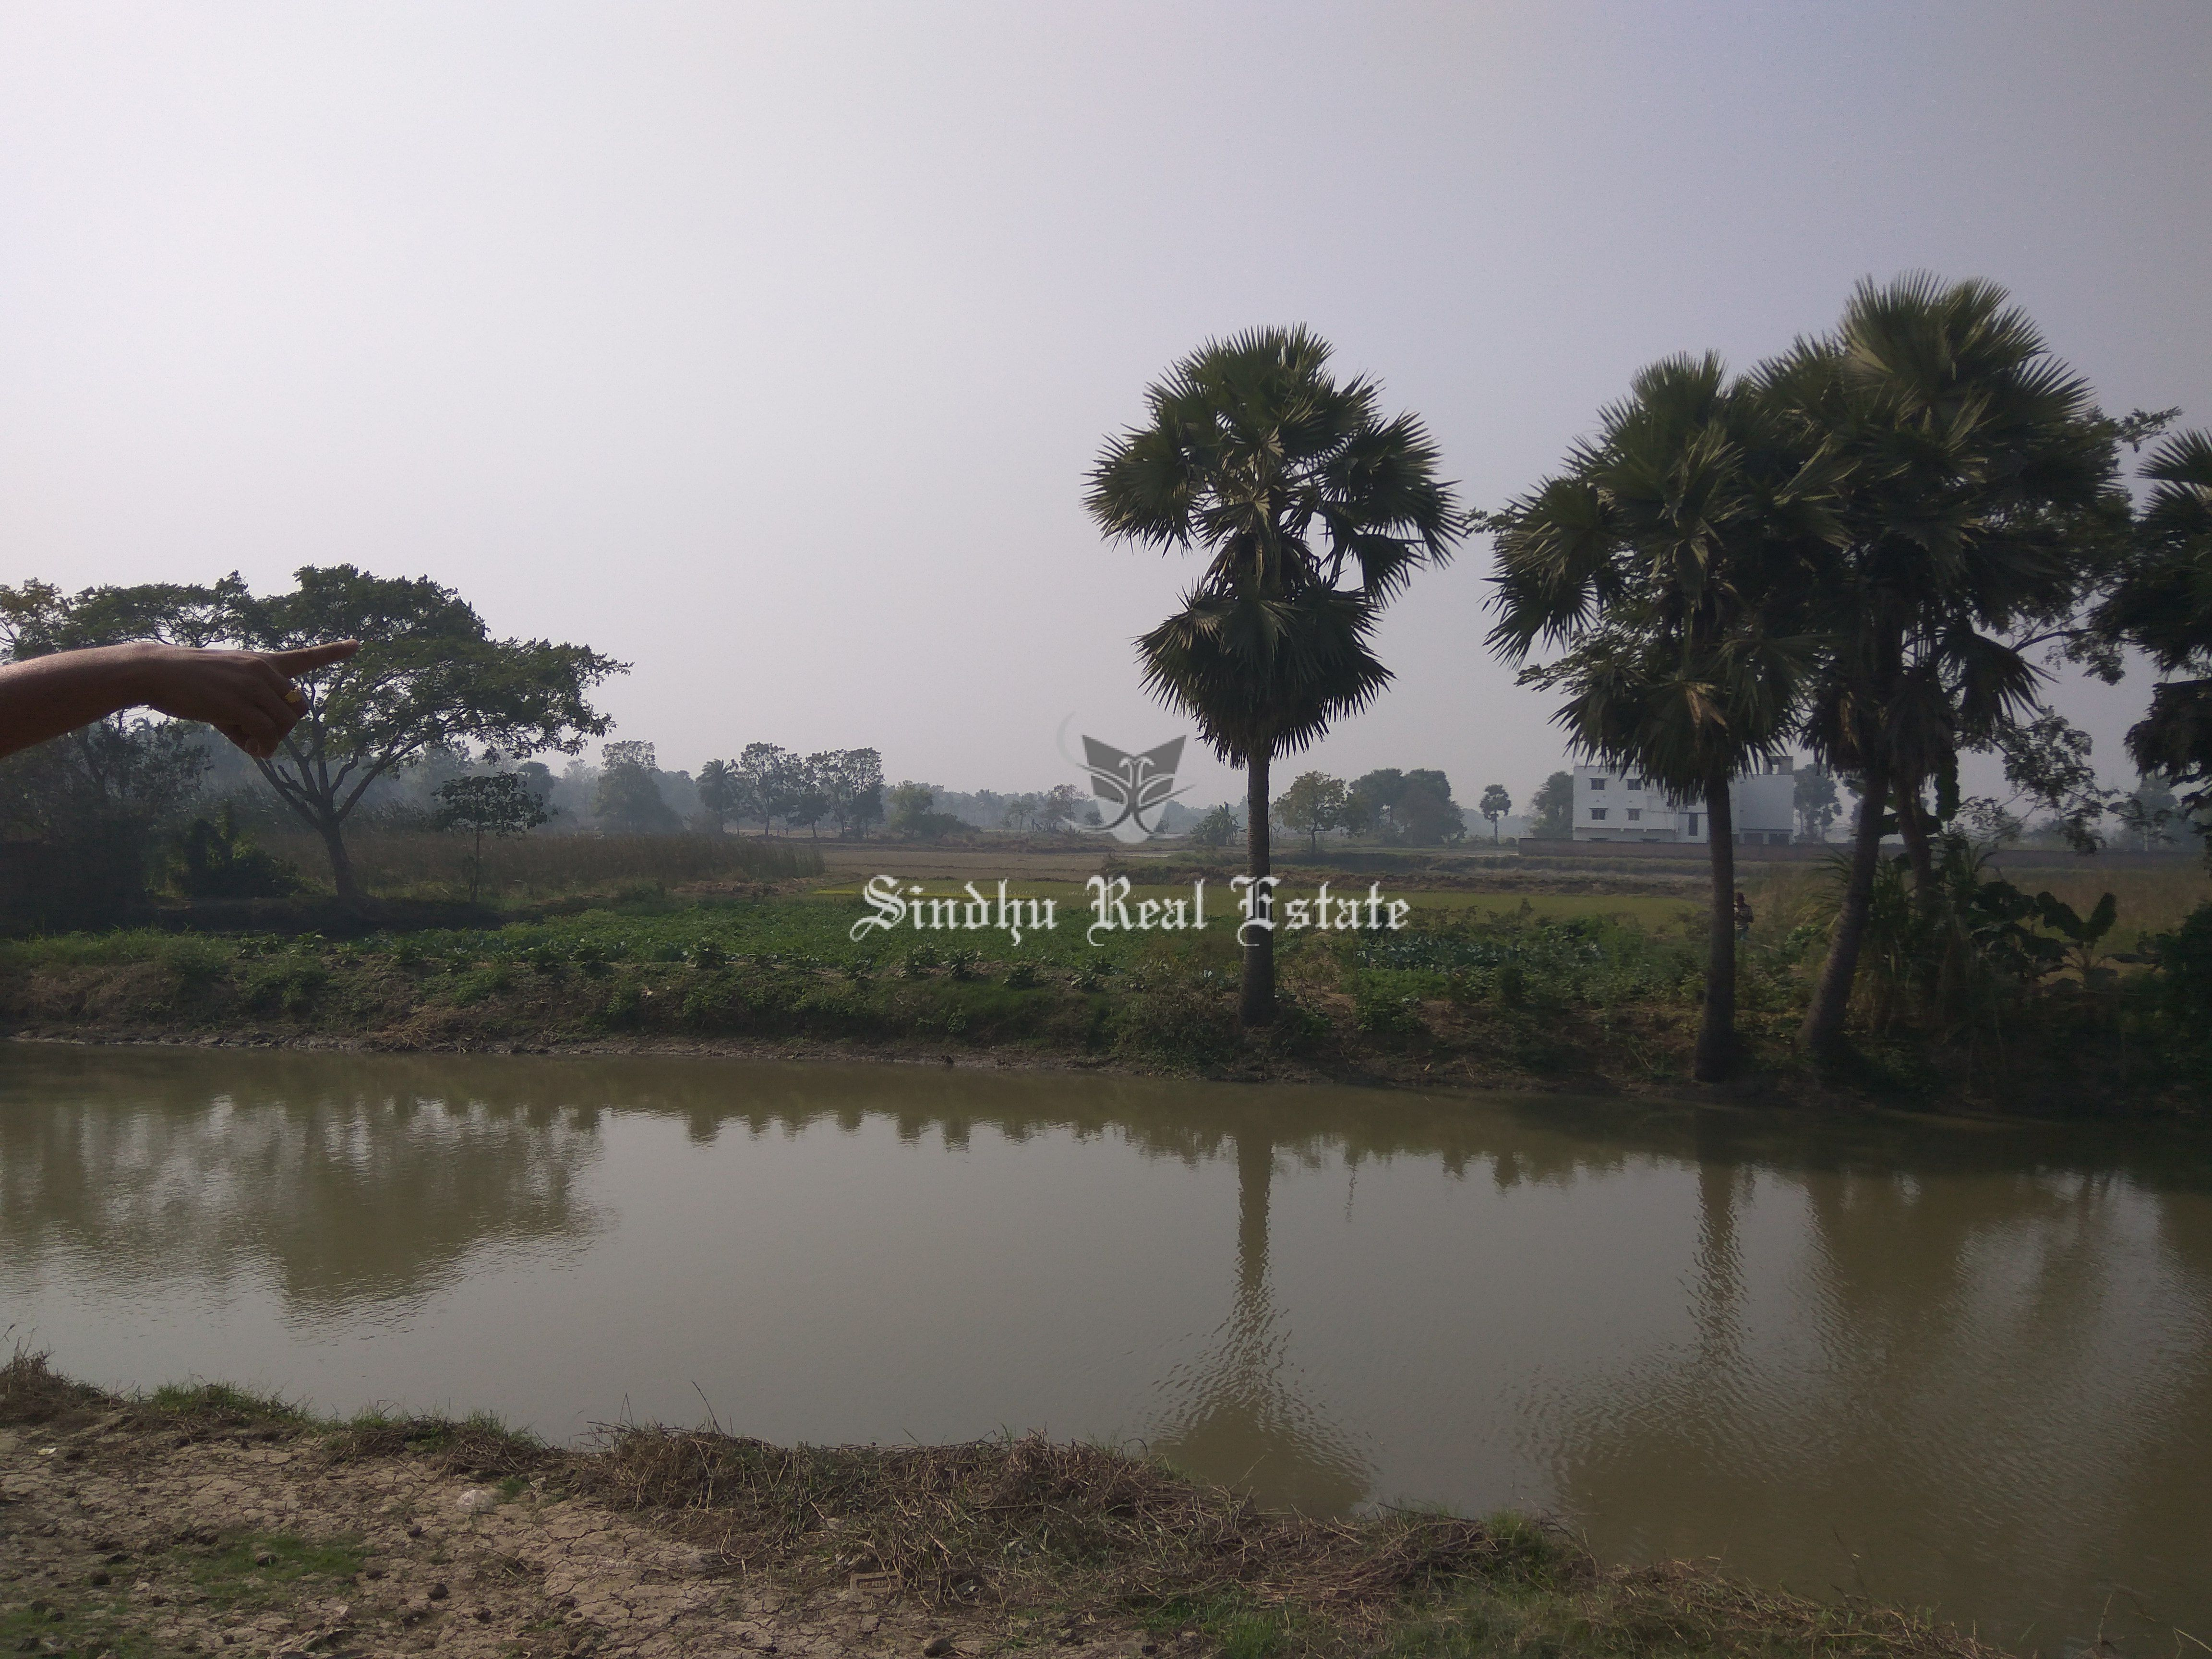 Commercial Land for Salein Baruipur